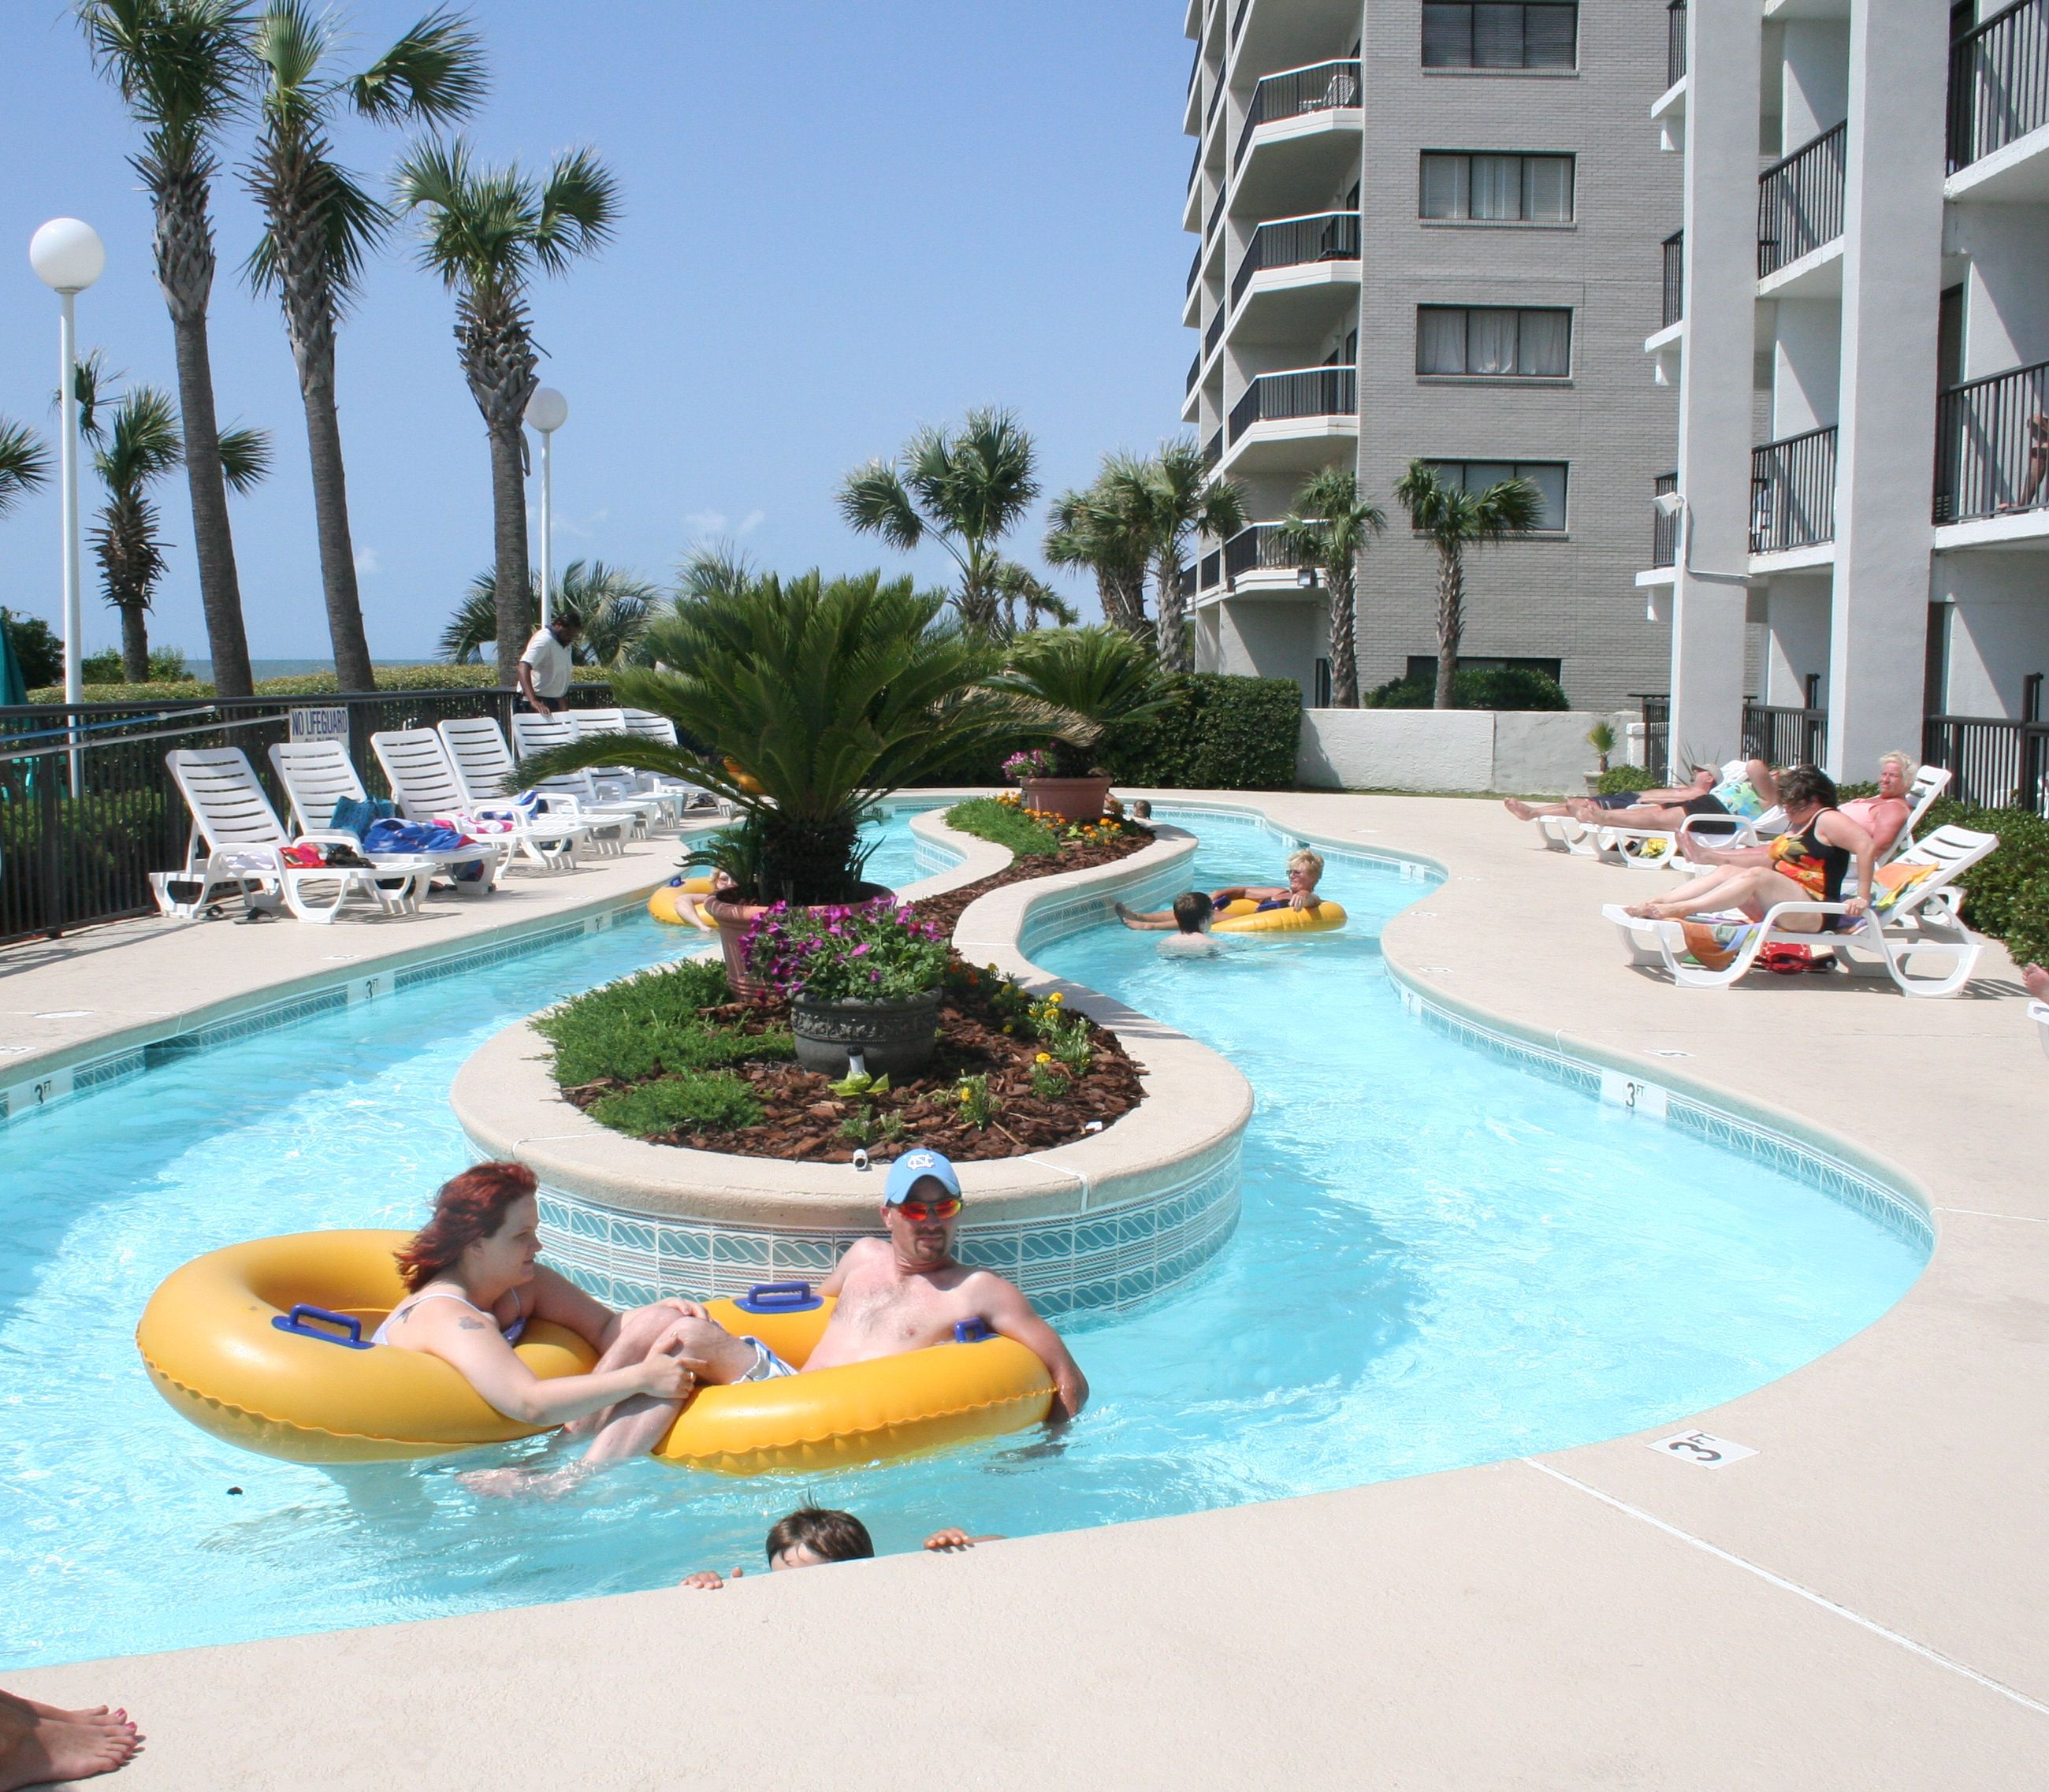 Enjoy A Float Around The Lazy River At Grande Shores The Best Oceanfront Myrtle Beach Hotel For Your Next Vacati Myrtle Beach Hotels Ocean Resort Myrtle Beach